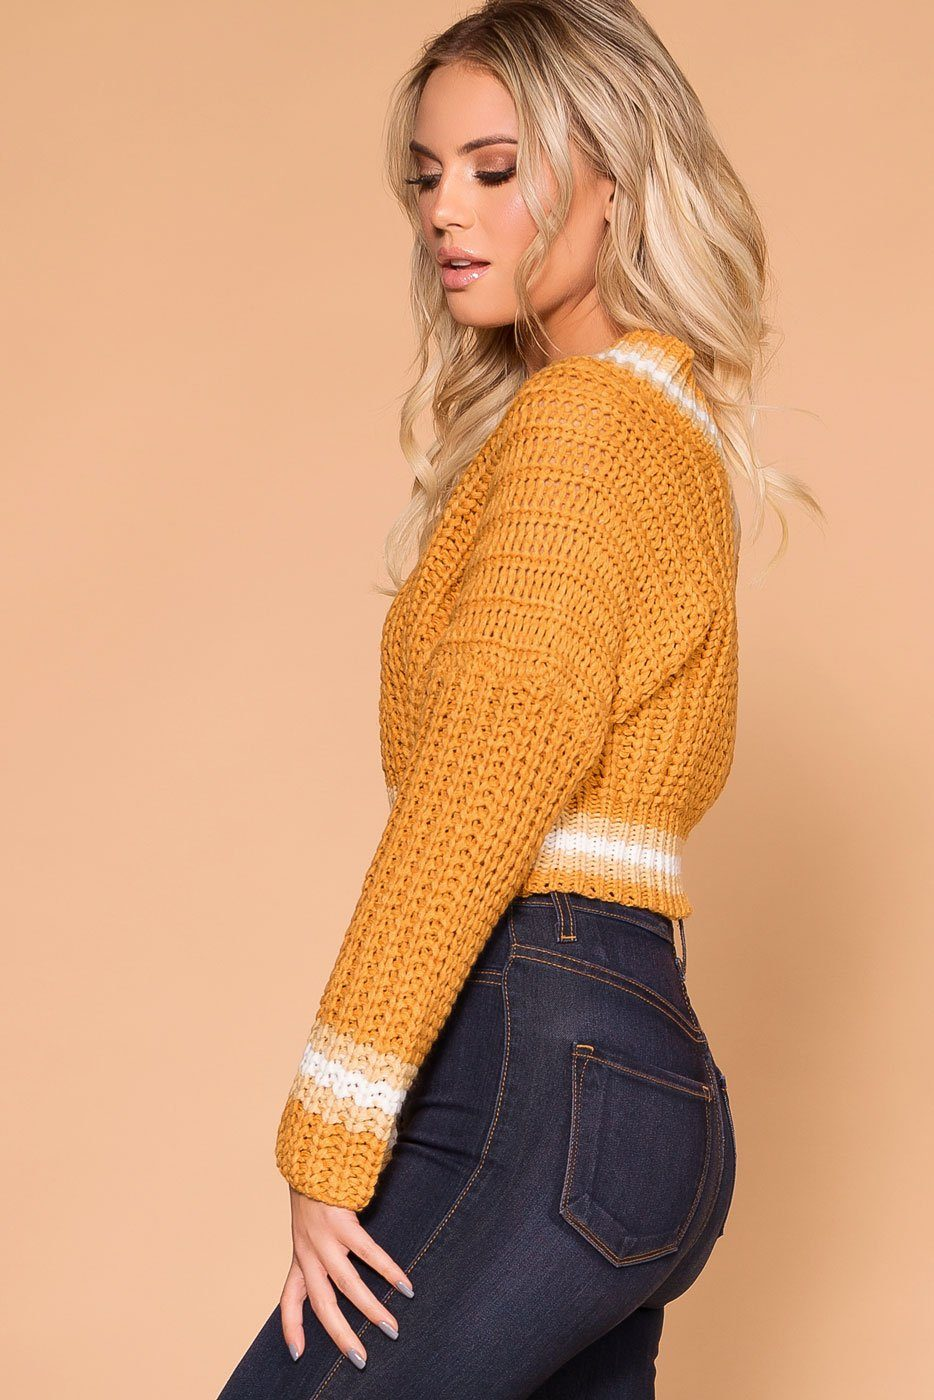 Priceless | Mustard Knit Sweater | Crop Sweater | Sweater Top | Womens